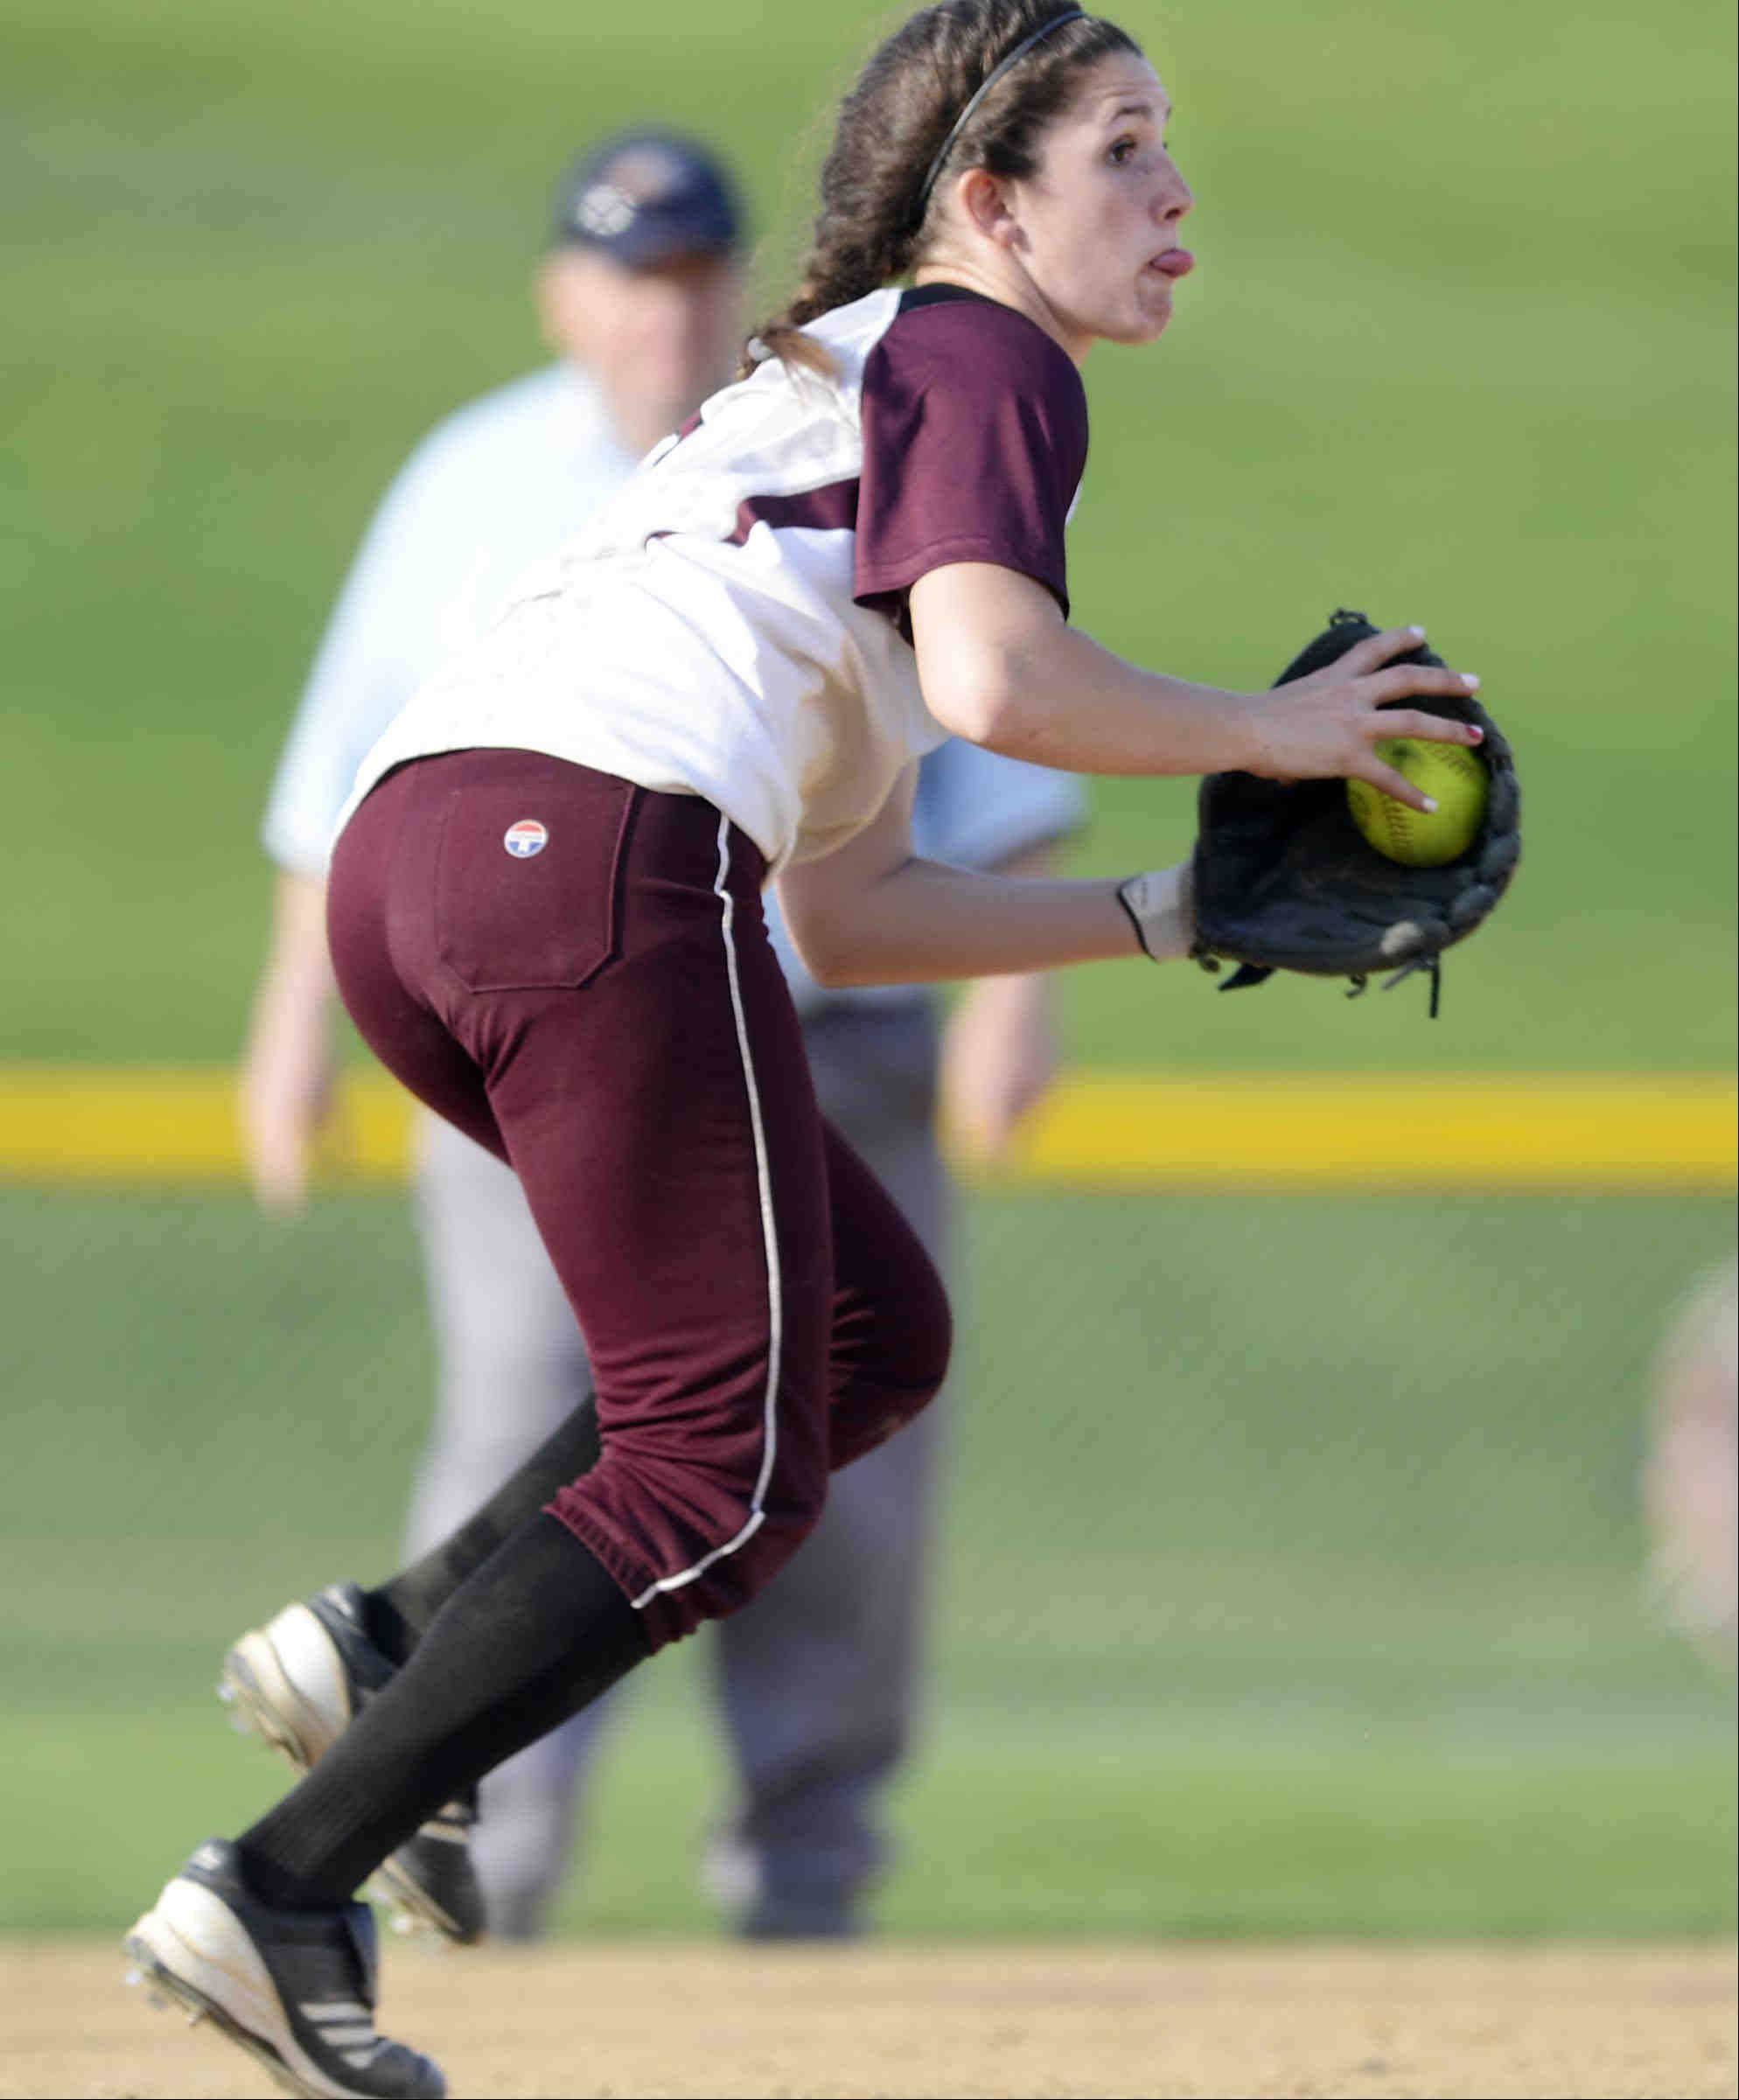 Elgin third baseman Jennah Perryman turns after fielding a bouncing ball by St. Charles North's Alexandra Millett Tuesday in Elgin. Perryman threw her out at first.